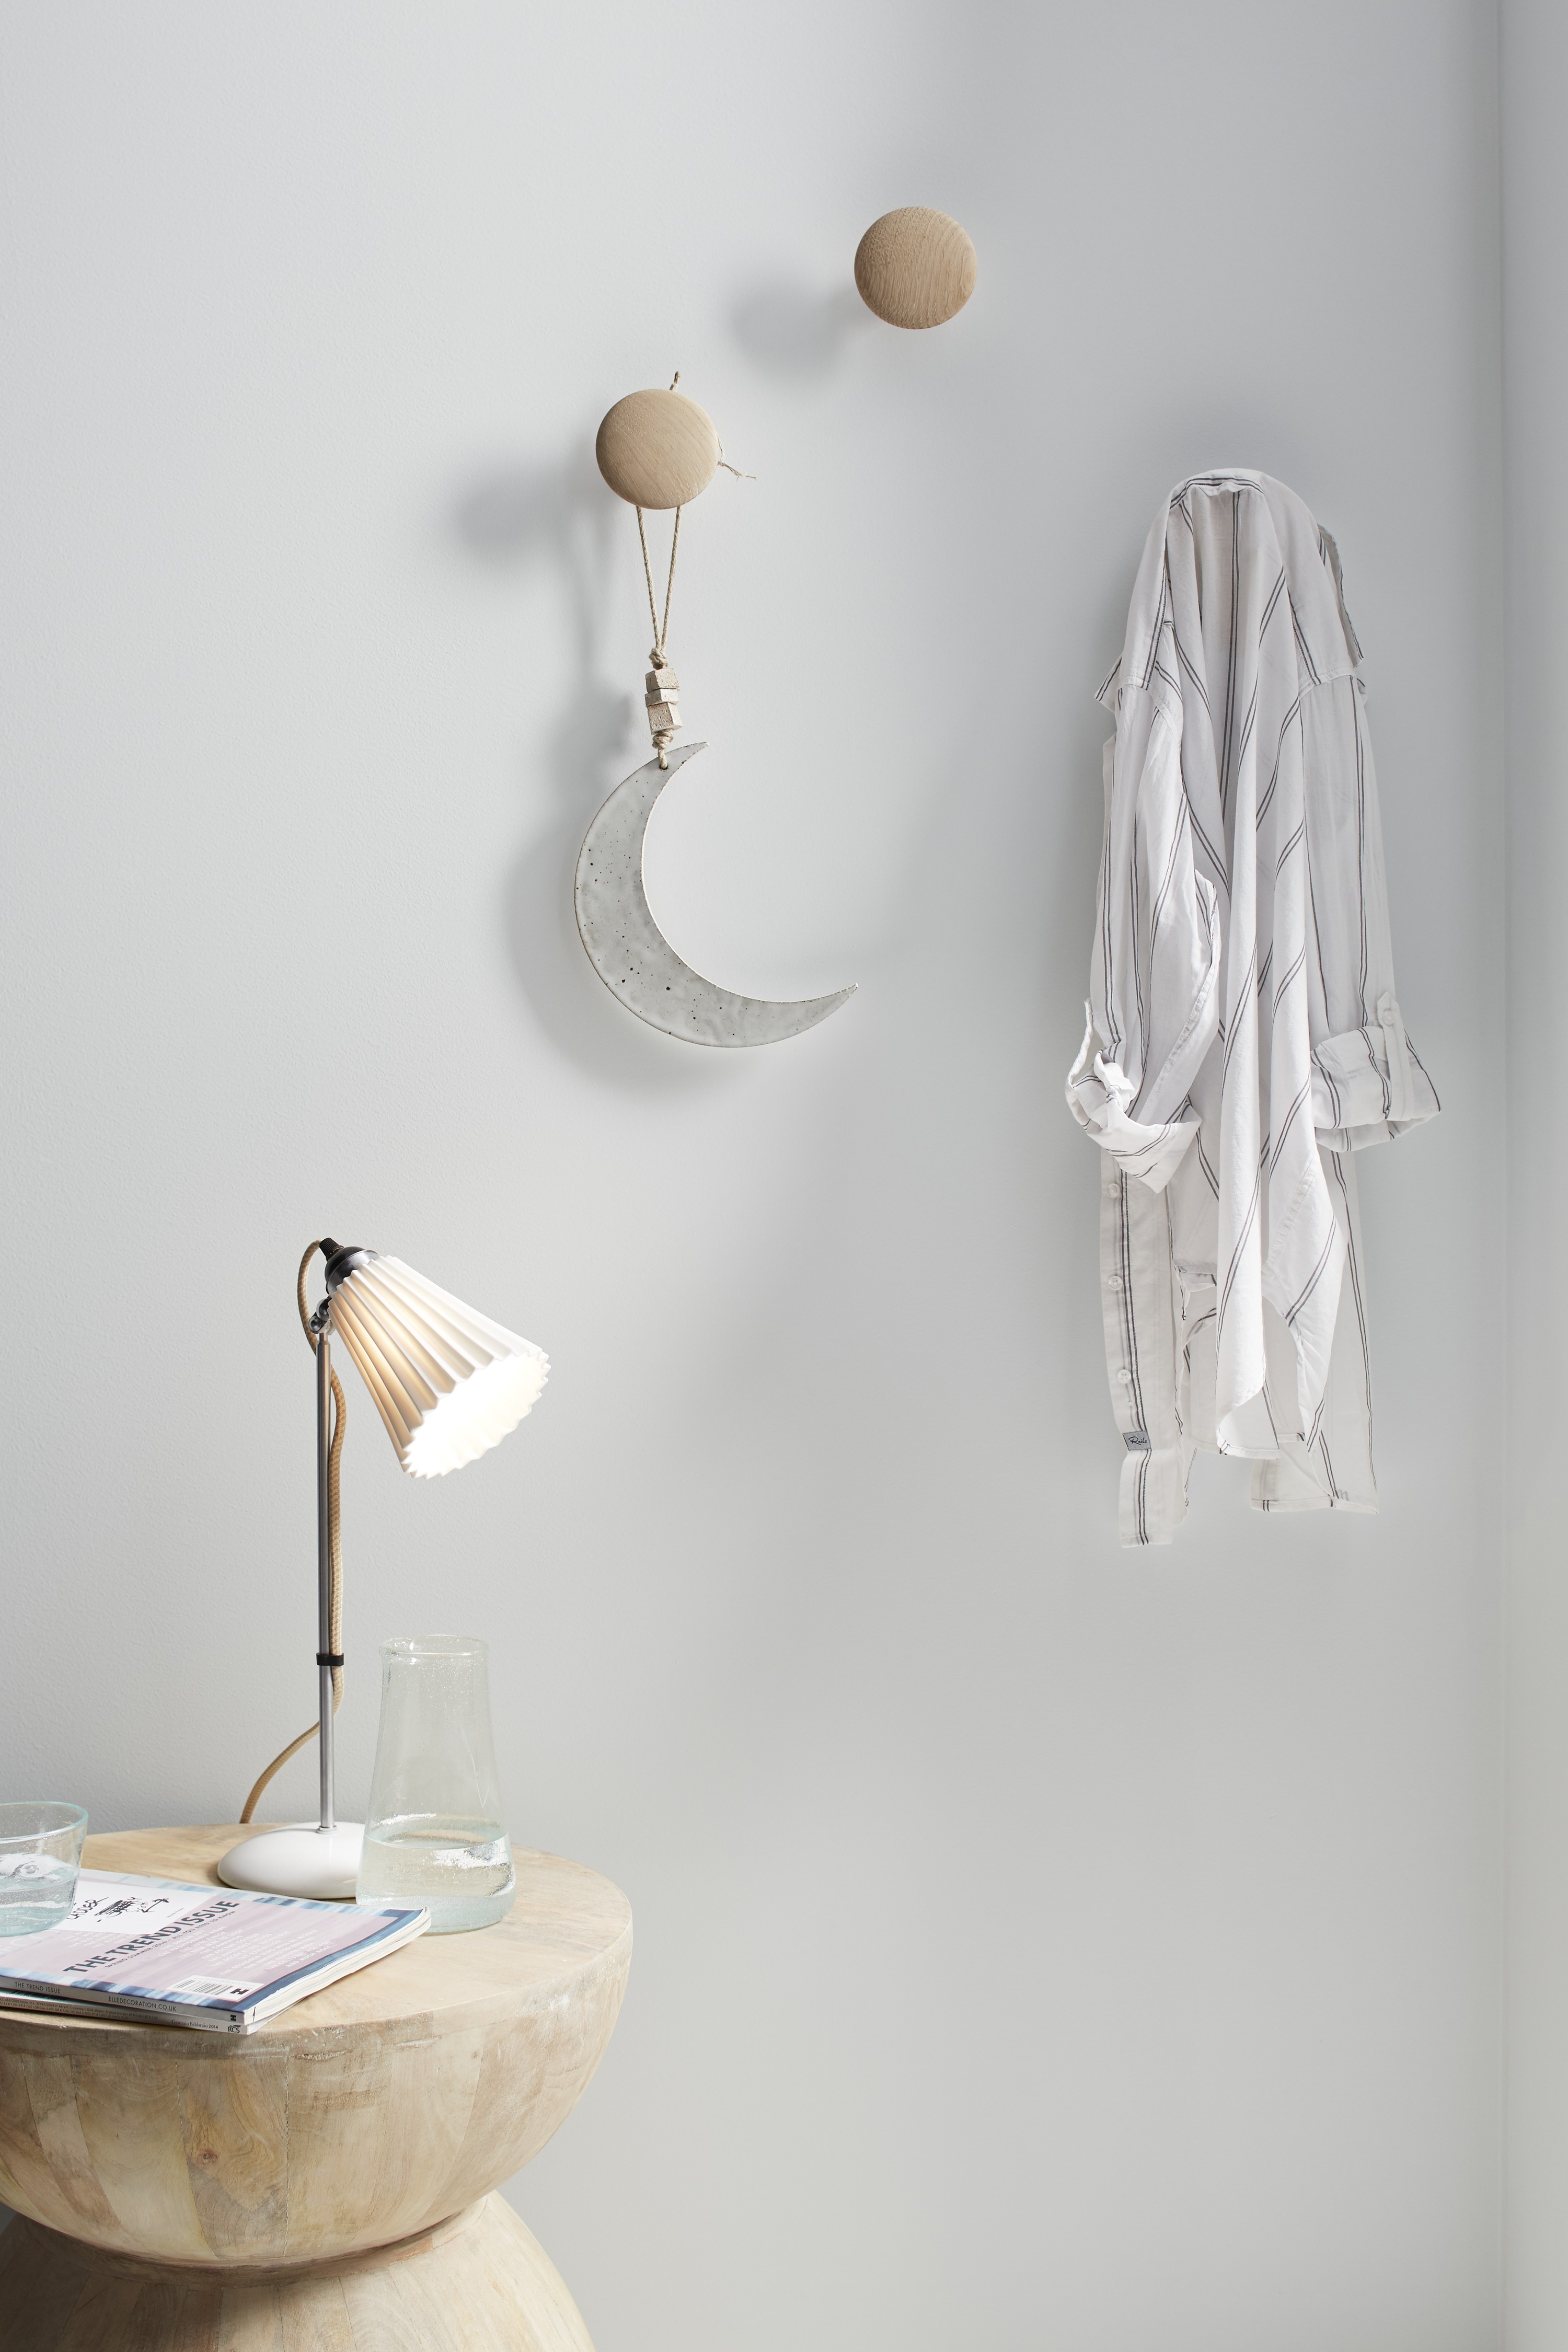 Simply designed organic accent pieces reinforce the room's Scandinavian style.